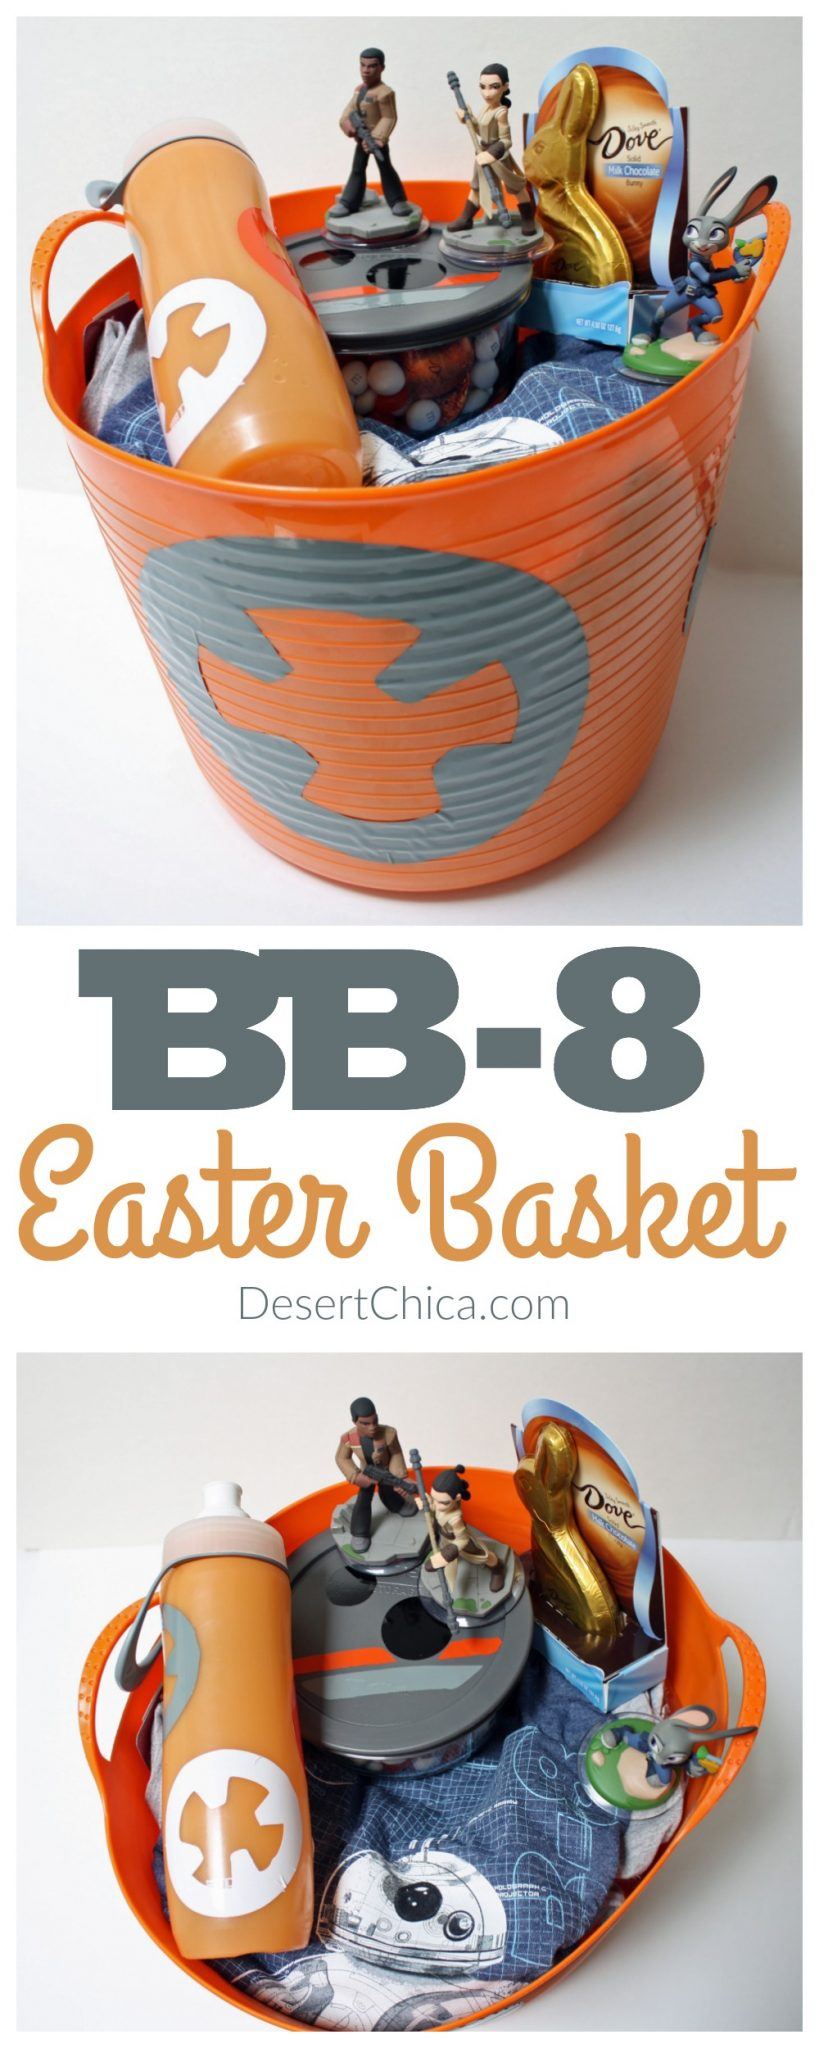 How to Make a BB-8 Easter Basket